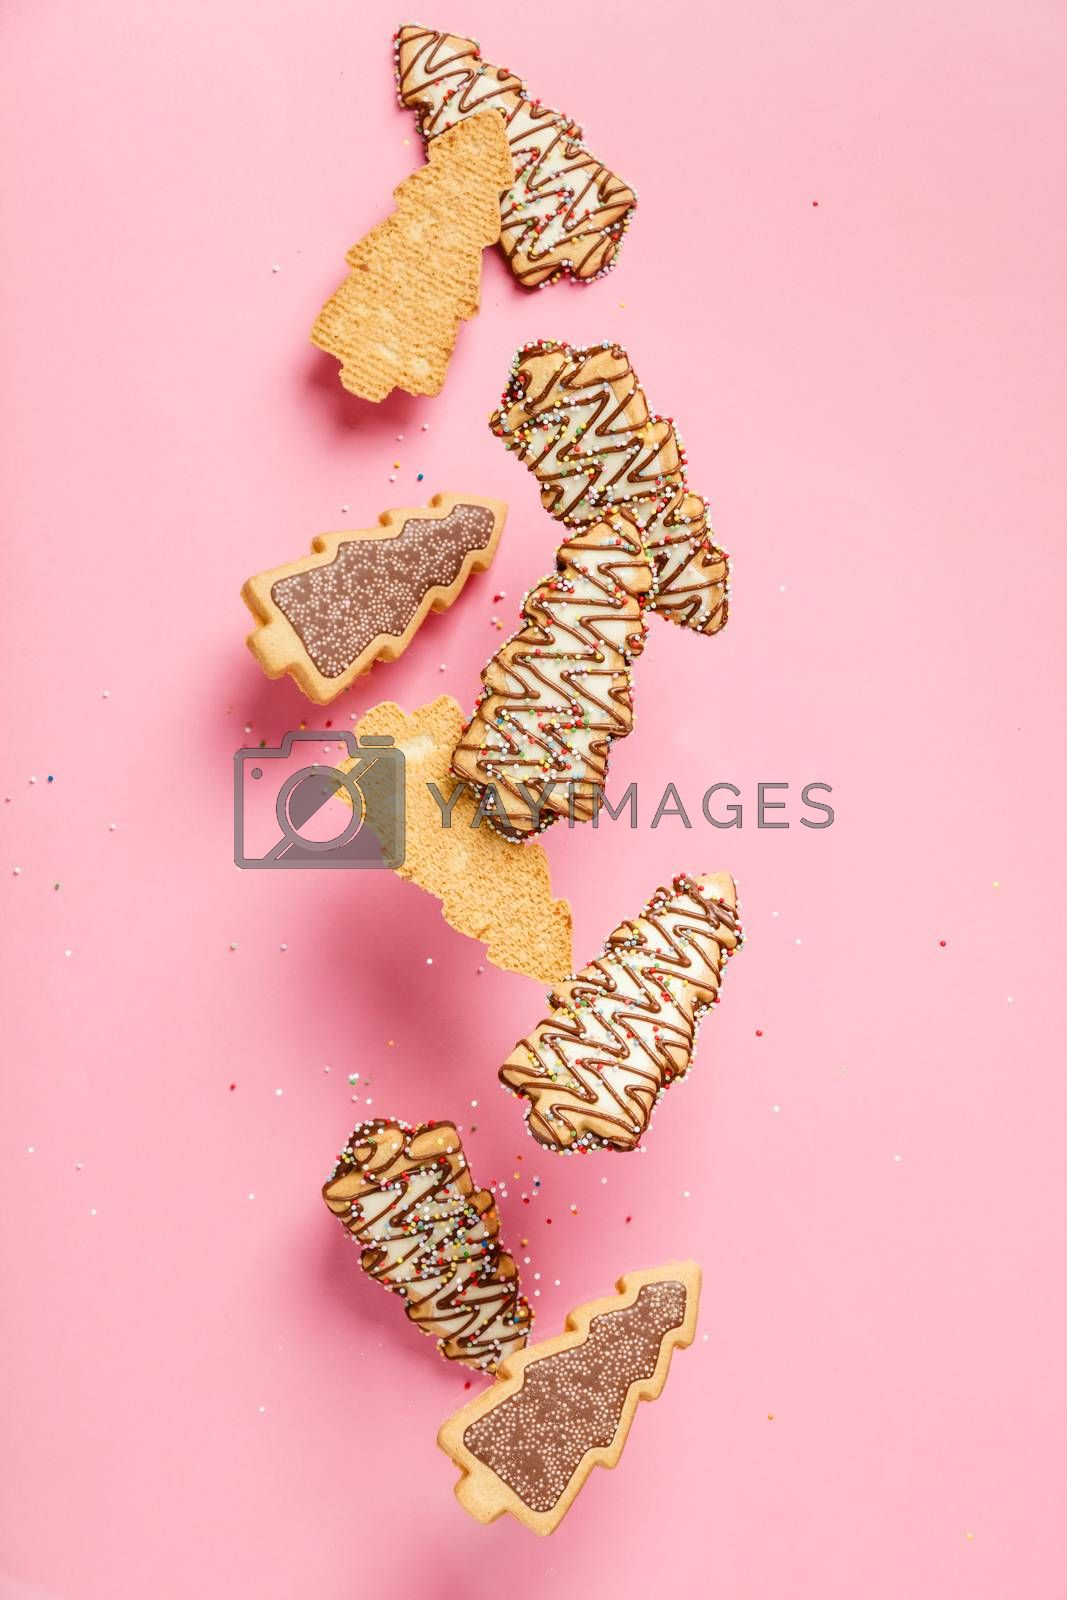 Christmas gingerbread cookies in the shape of a Christmas tree falling or flying in motion against pastel pink background